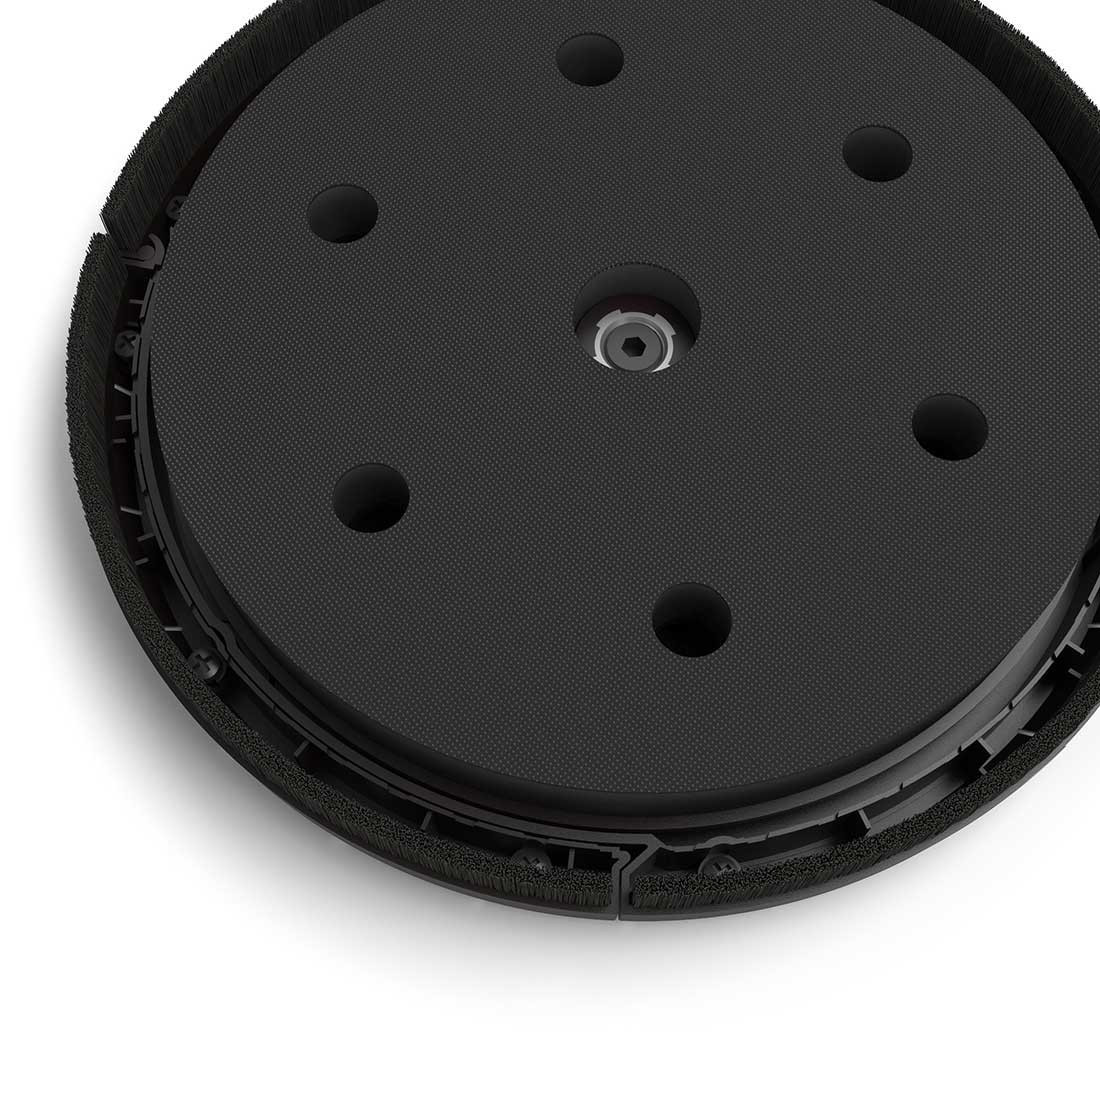 MENZER LHS 225 PRO  perforated sanding disc